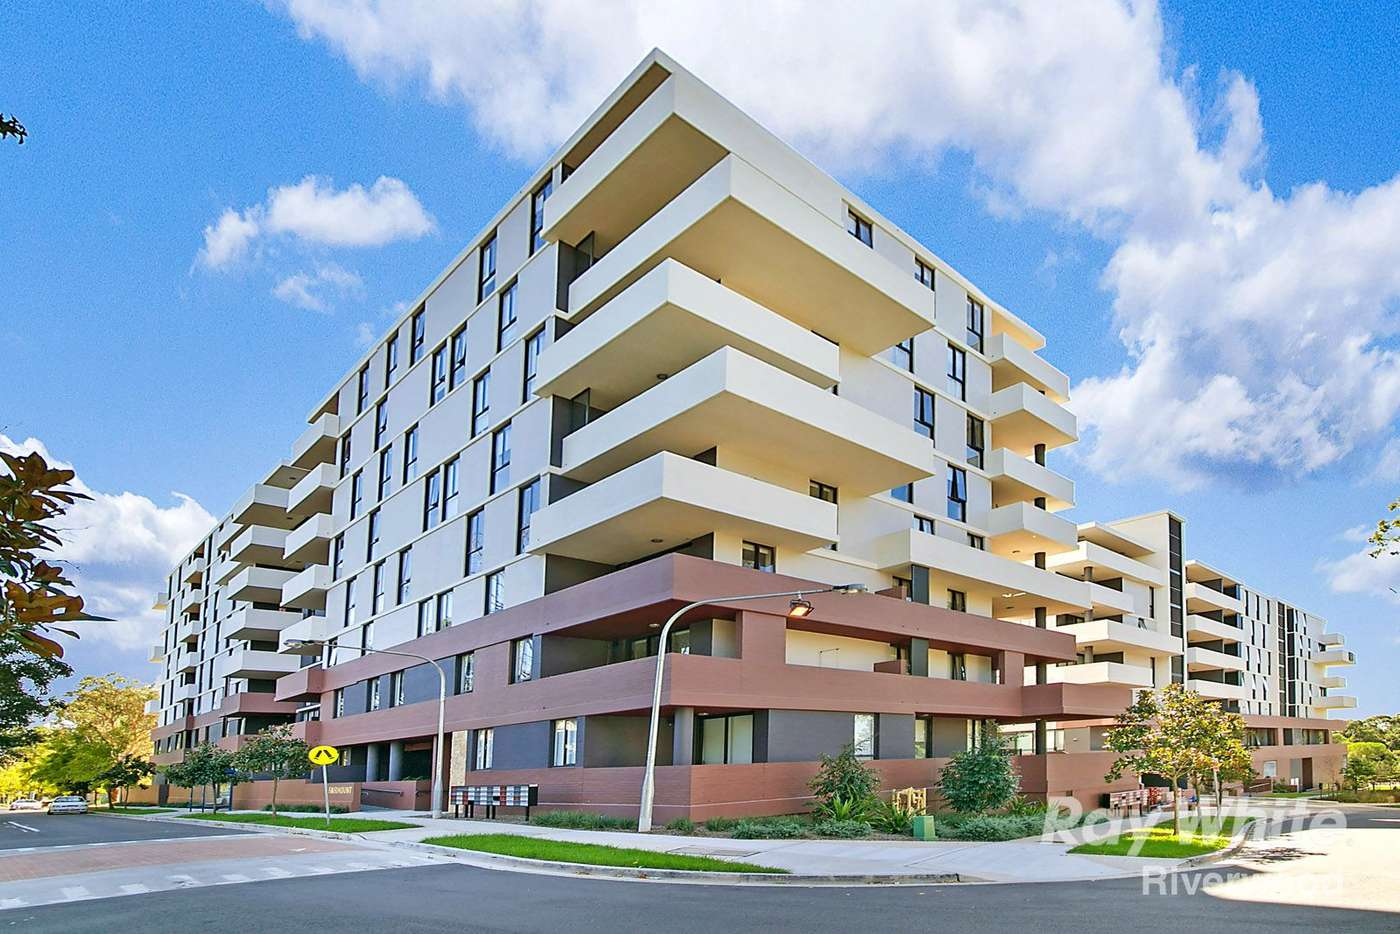 Main view of Homely apartment listing, 805/1 Vermont Crescent, Riverwood NSW 2210